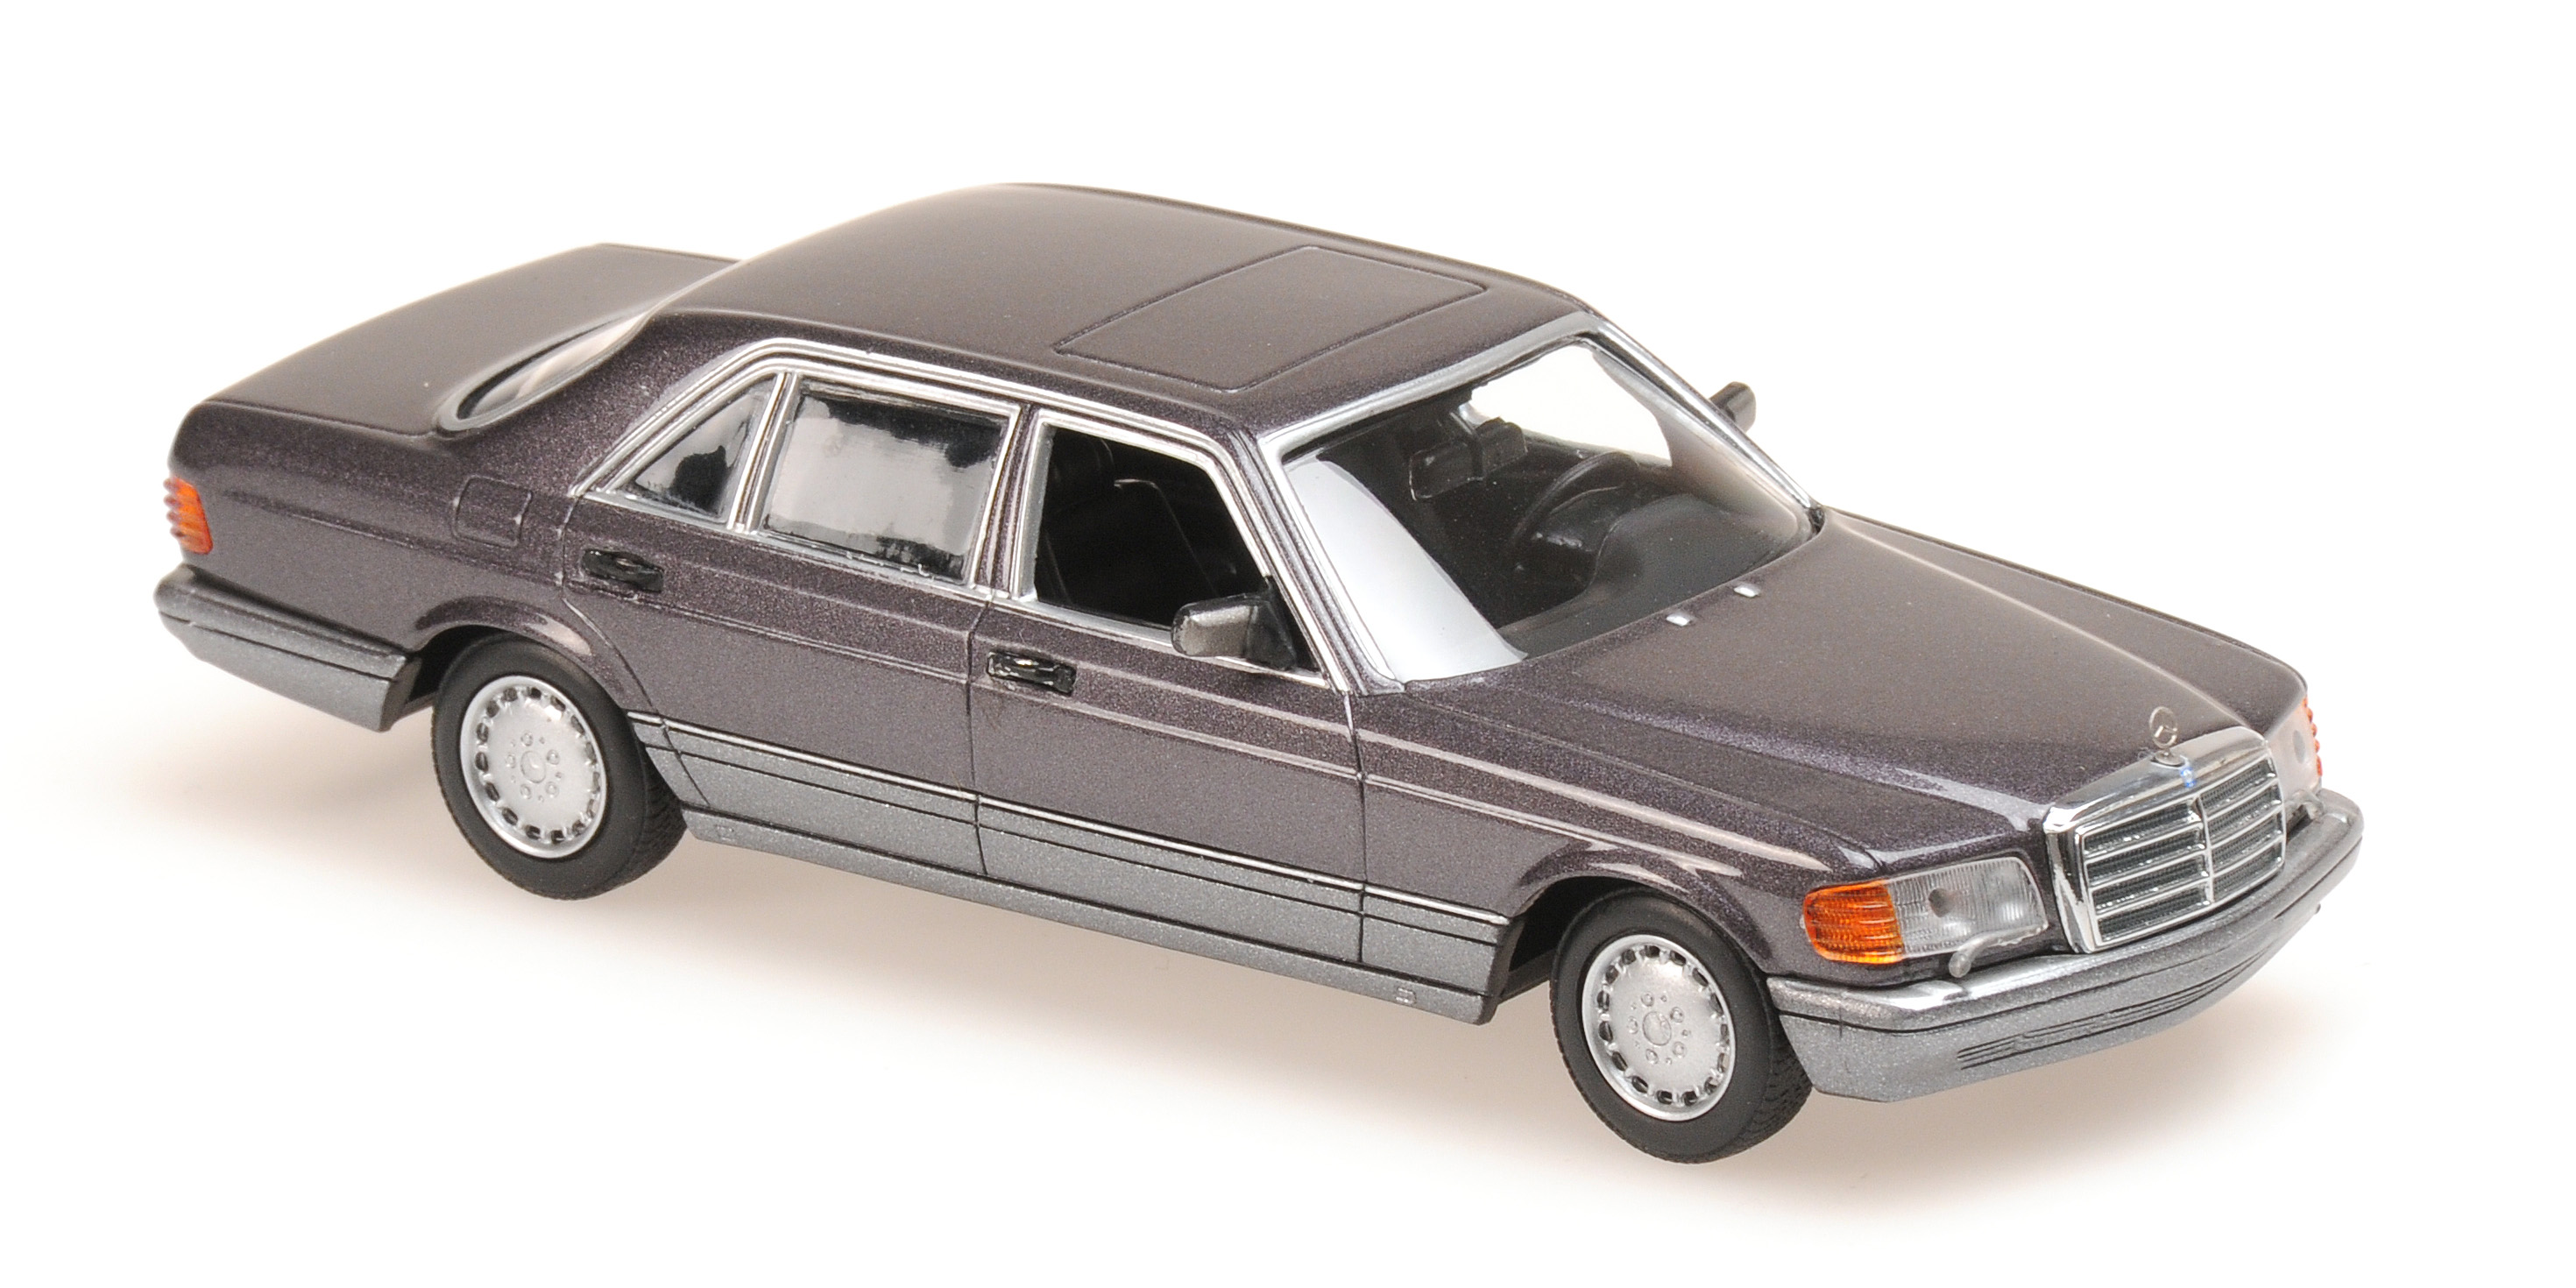 Mercedes-Benz 560 SEL 1990 Paars Metallic